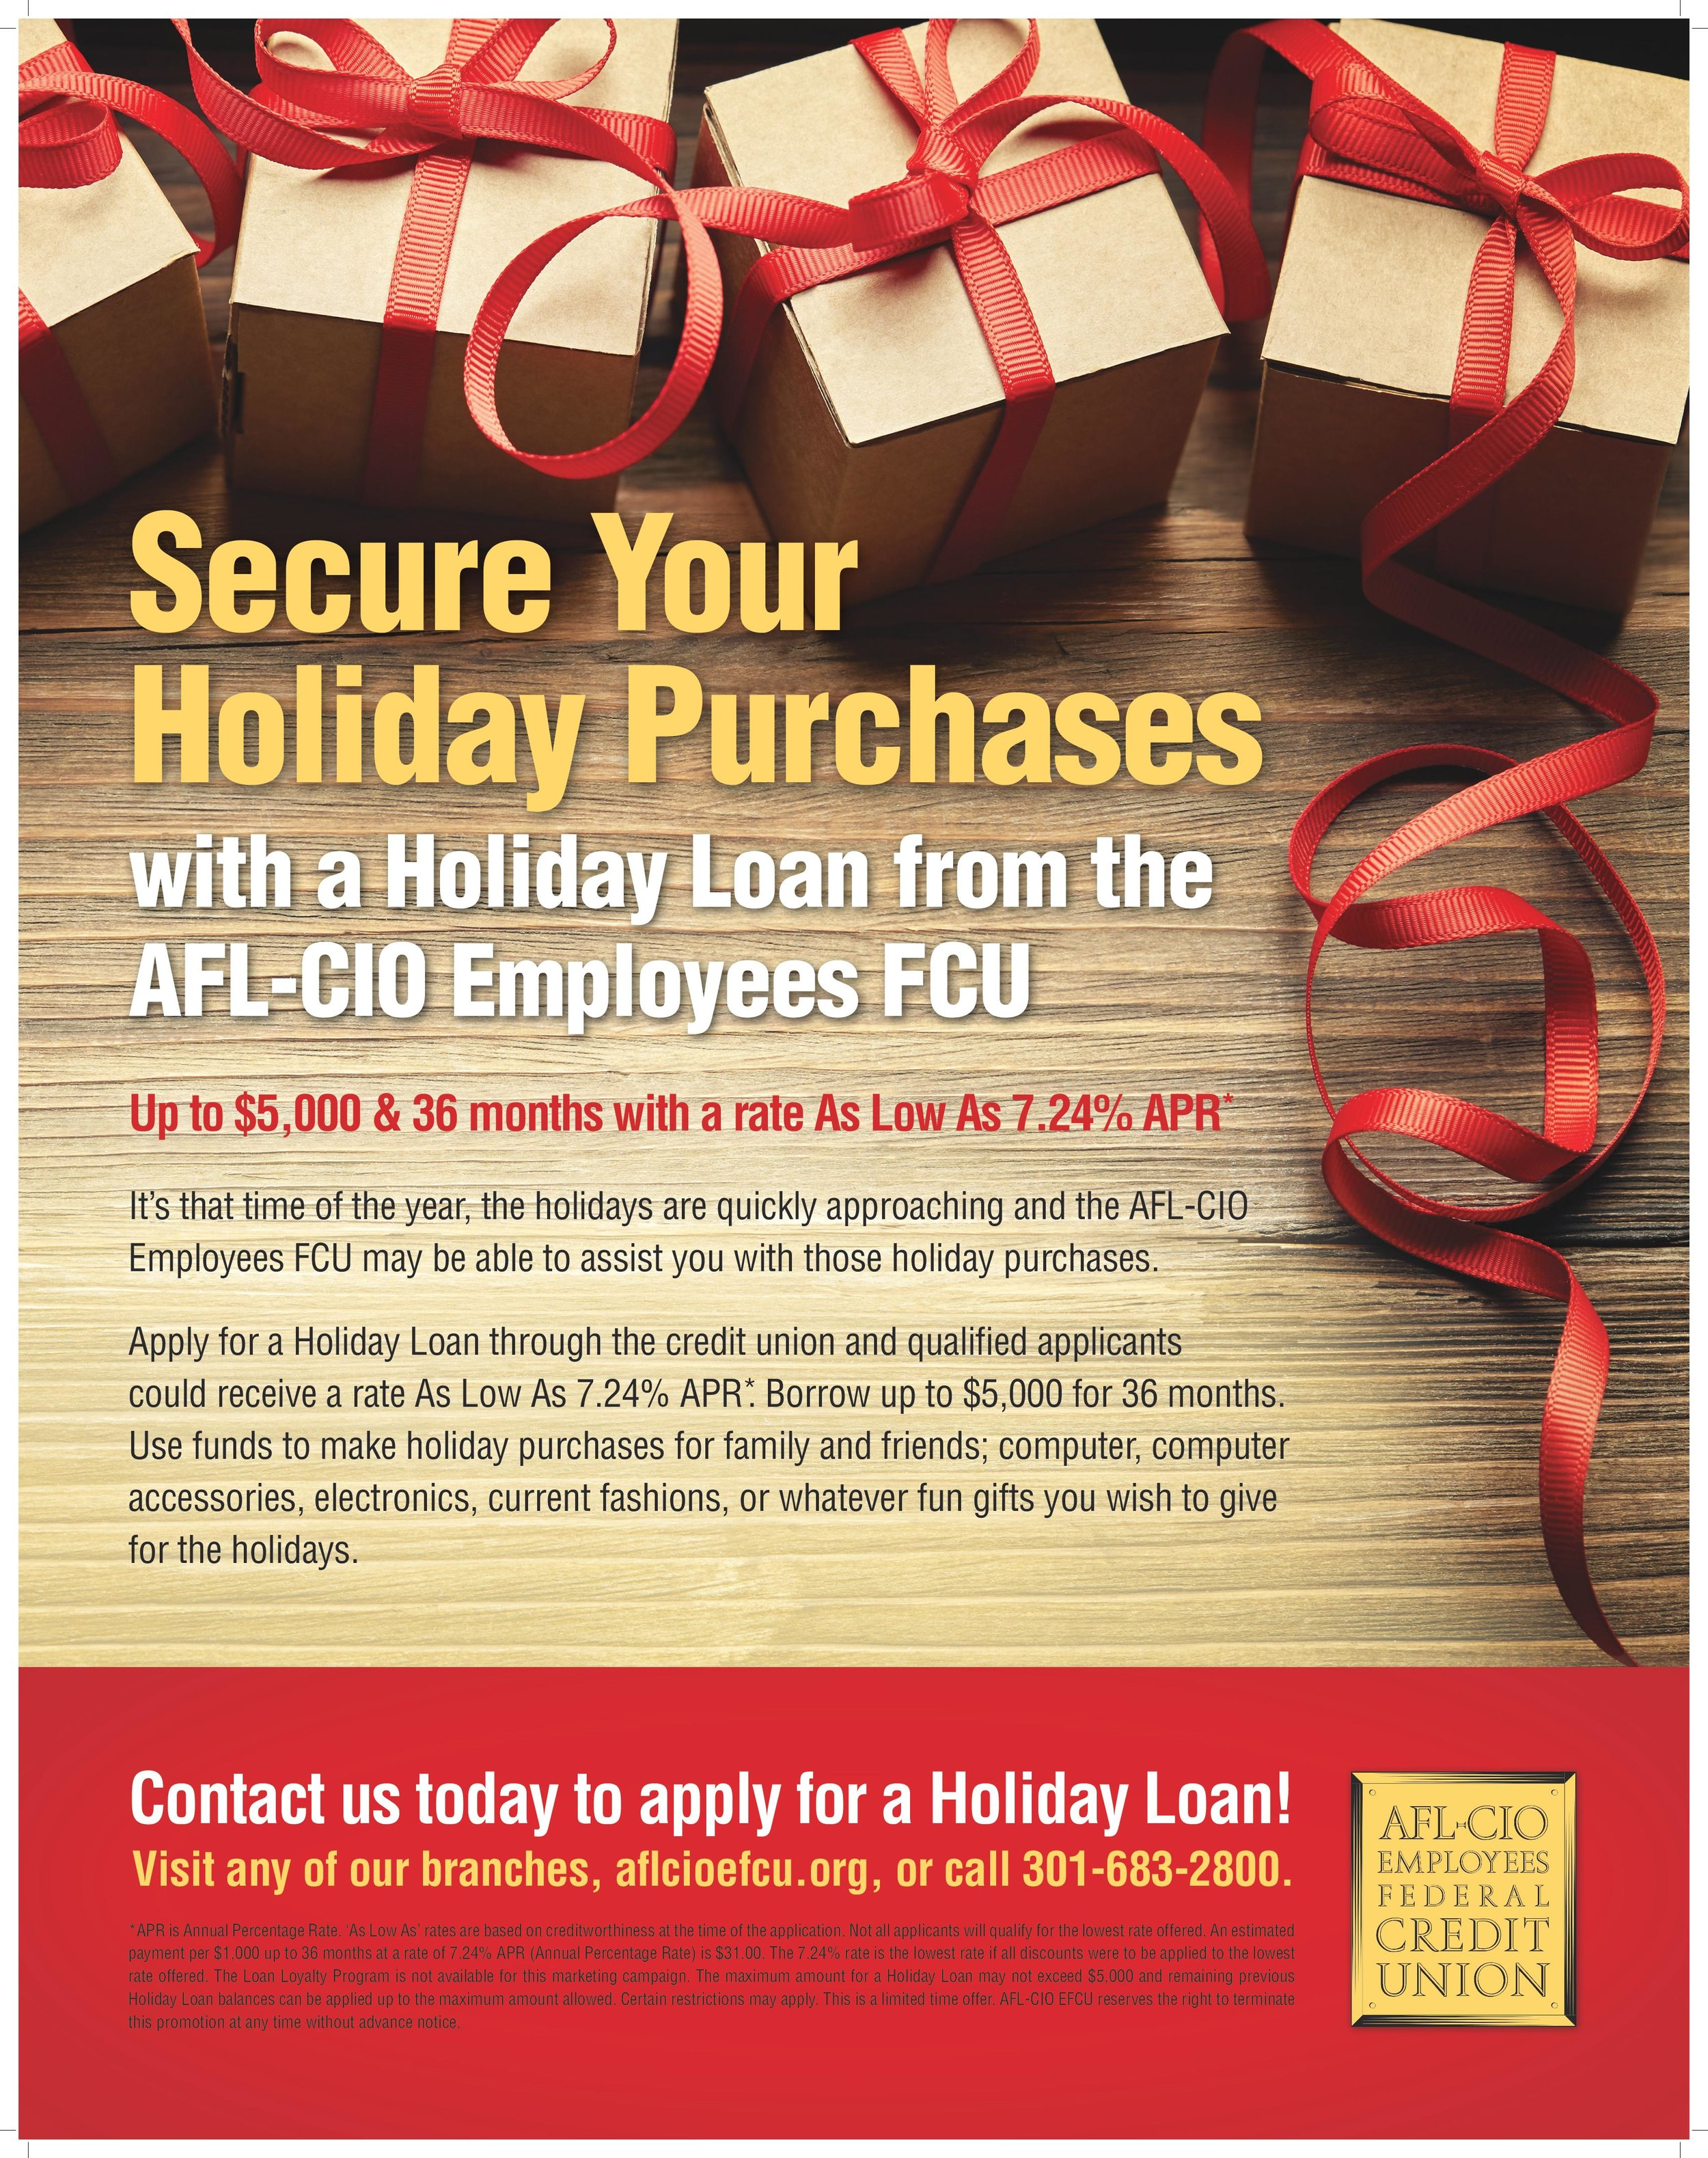 Secure your holiday purchases with a holiday loan from the AFL-CIO Employees FCU Up to $5,000 & 36 months with a rate As Low As 7.24% APR* It's that time of the year, the holidays are quickly approaching and the AFL-CIO Employees FCU may be able to assist you with those holiday purchases. Apply for a Holiday Loan through the credit union and qualified applicants could receive a rate As Low As 7.24% APR*. Borrow up to $5,000 for 36 months. Use funds to make holiday purchases for family and friends; computer, computer accessories, electronics, current fashions, or whatever fun gifts you wish to give for the holidays. Contact us today to apply for a Holiday Loan! Visit any of our branches, aflcioefcu.org, or call 301-683-2800. *APR is Annual Percentage Rate. 'As Low As' rates are based on creditworthiness at the time of the application. Not all applicants will qualify for the lowest rate offered. An estimated payment per $1,000 up to 36 months at a rate of 7.24% APR (Annual Percentage Rate) is $31.00. The 7.24% rate is the lowest rate if all discounts were to be applied to the lowest rate offered. The Loan Loyalty Program is not available for this marketing campaign. The maximum amount for a Holiday Loan may not exceed $5,000 and remaining previous Holiday Loan balances can be applied up to the maximum amount allowed. Certain restrictions may apply. This is a limited time offer. AFL-CIO EFCU reserves the right to terminate this promotion at any time without advance notice.